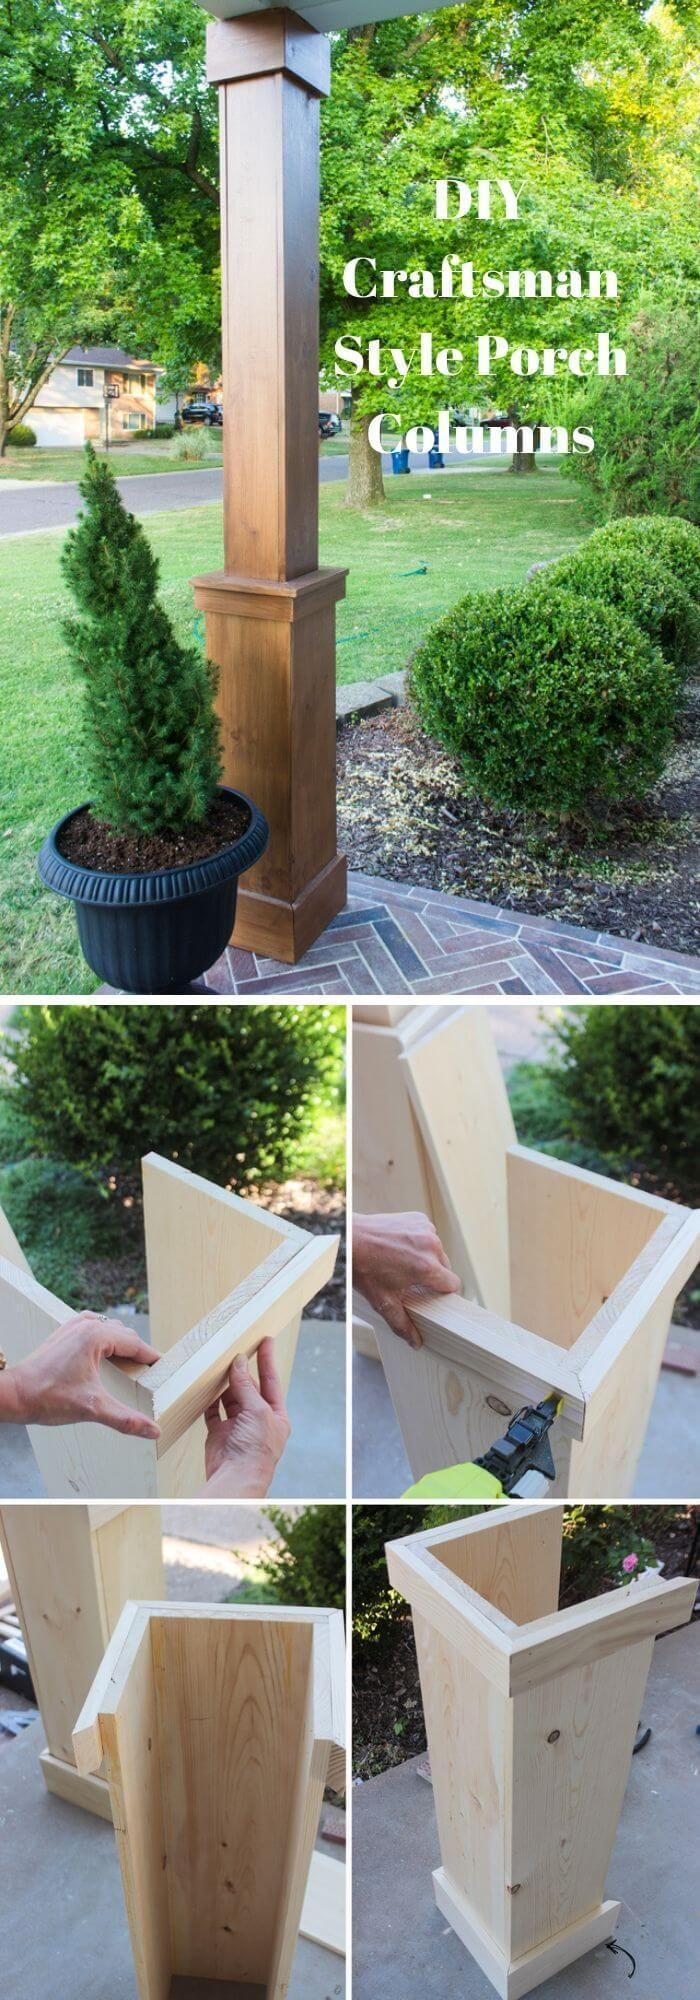 24+ Awesome DIY Outdoor Projects To Make Your Backyard More Fun #diyoutdoorprojects